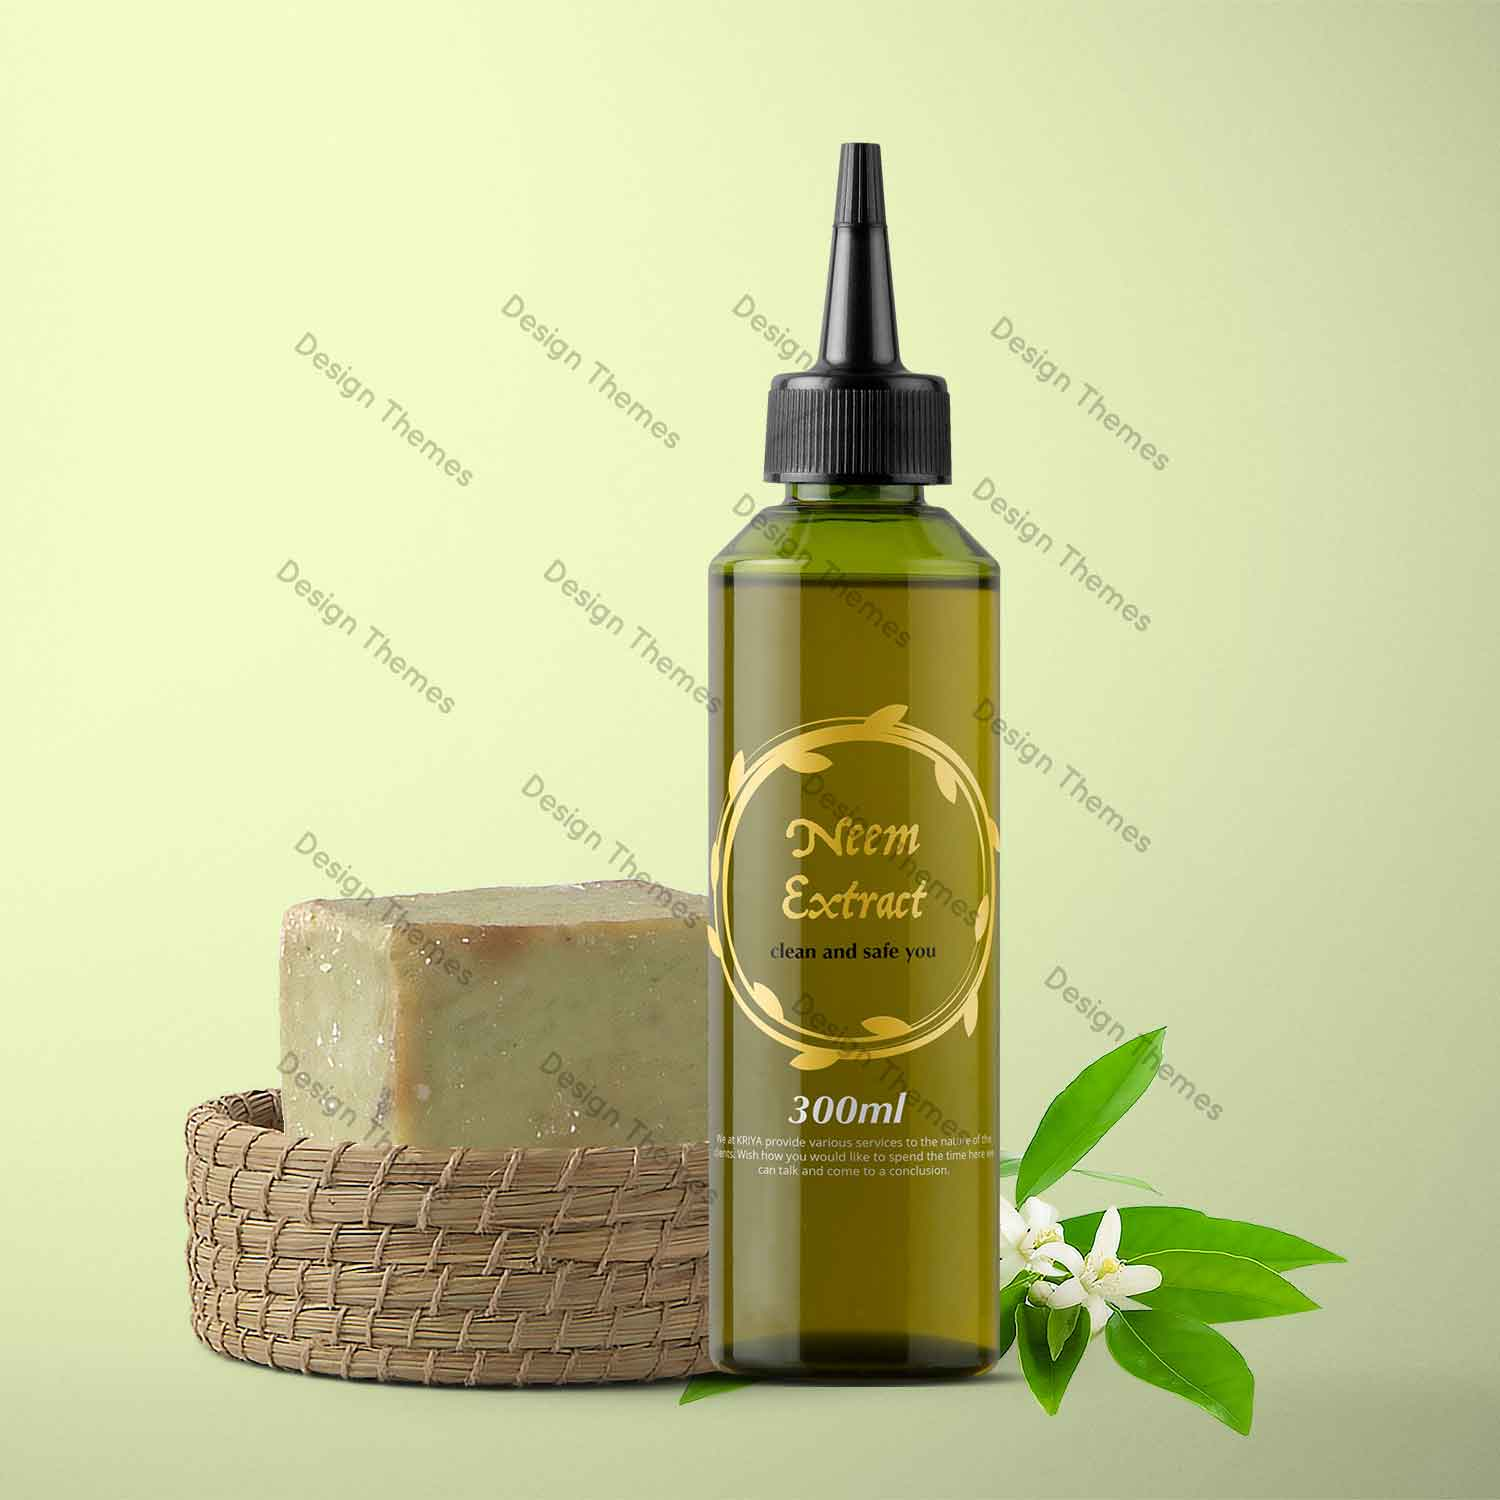 neem extract soap